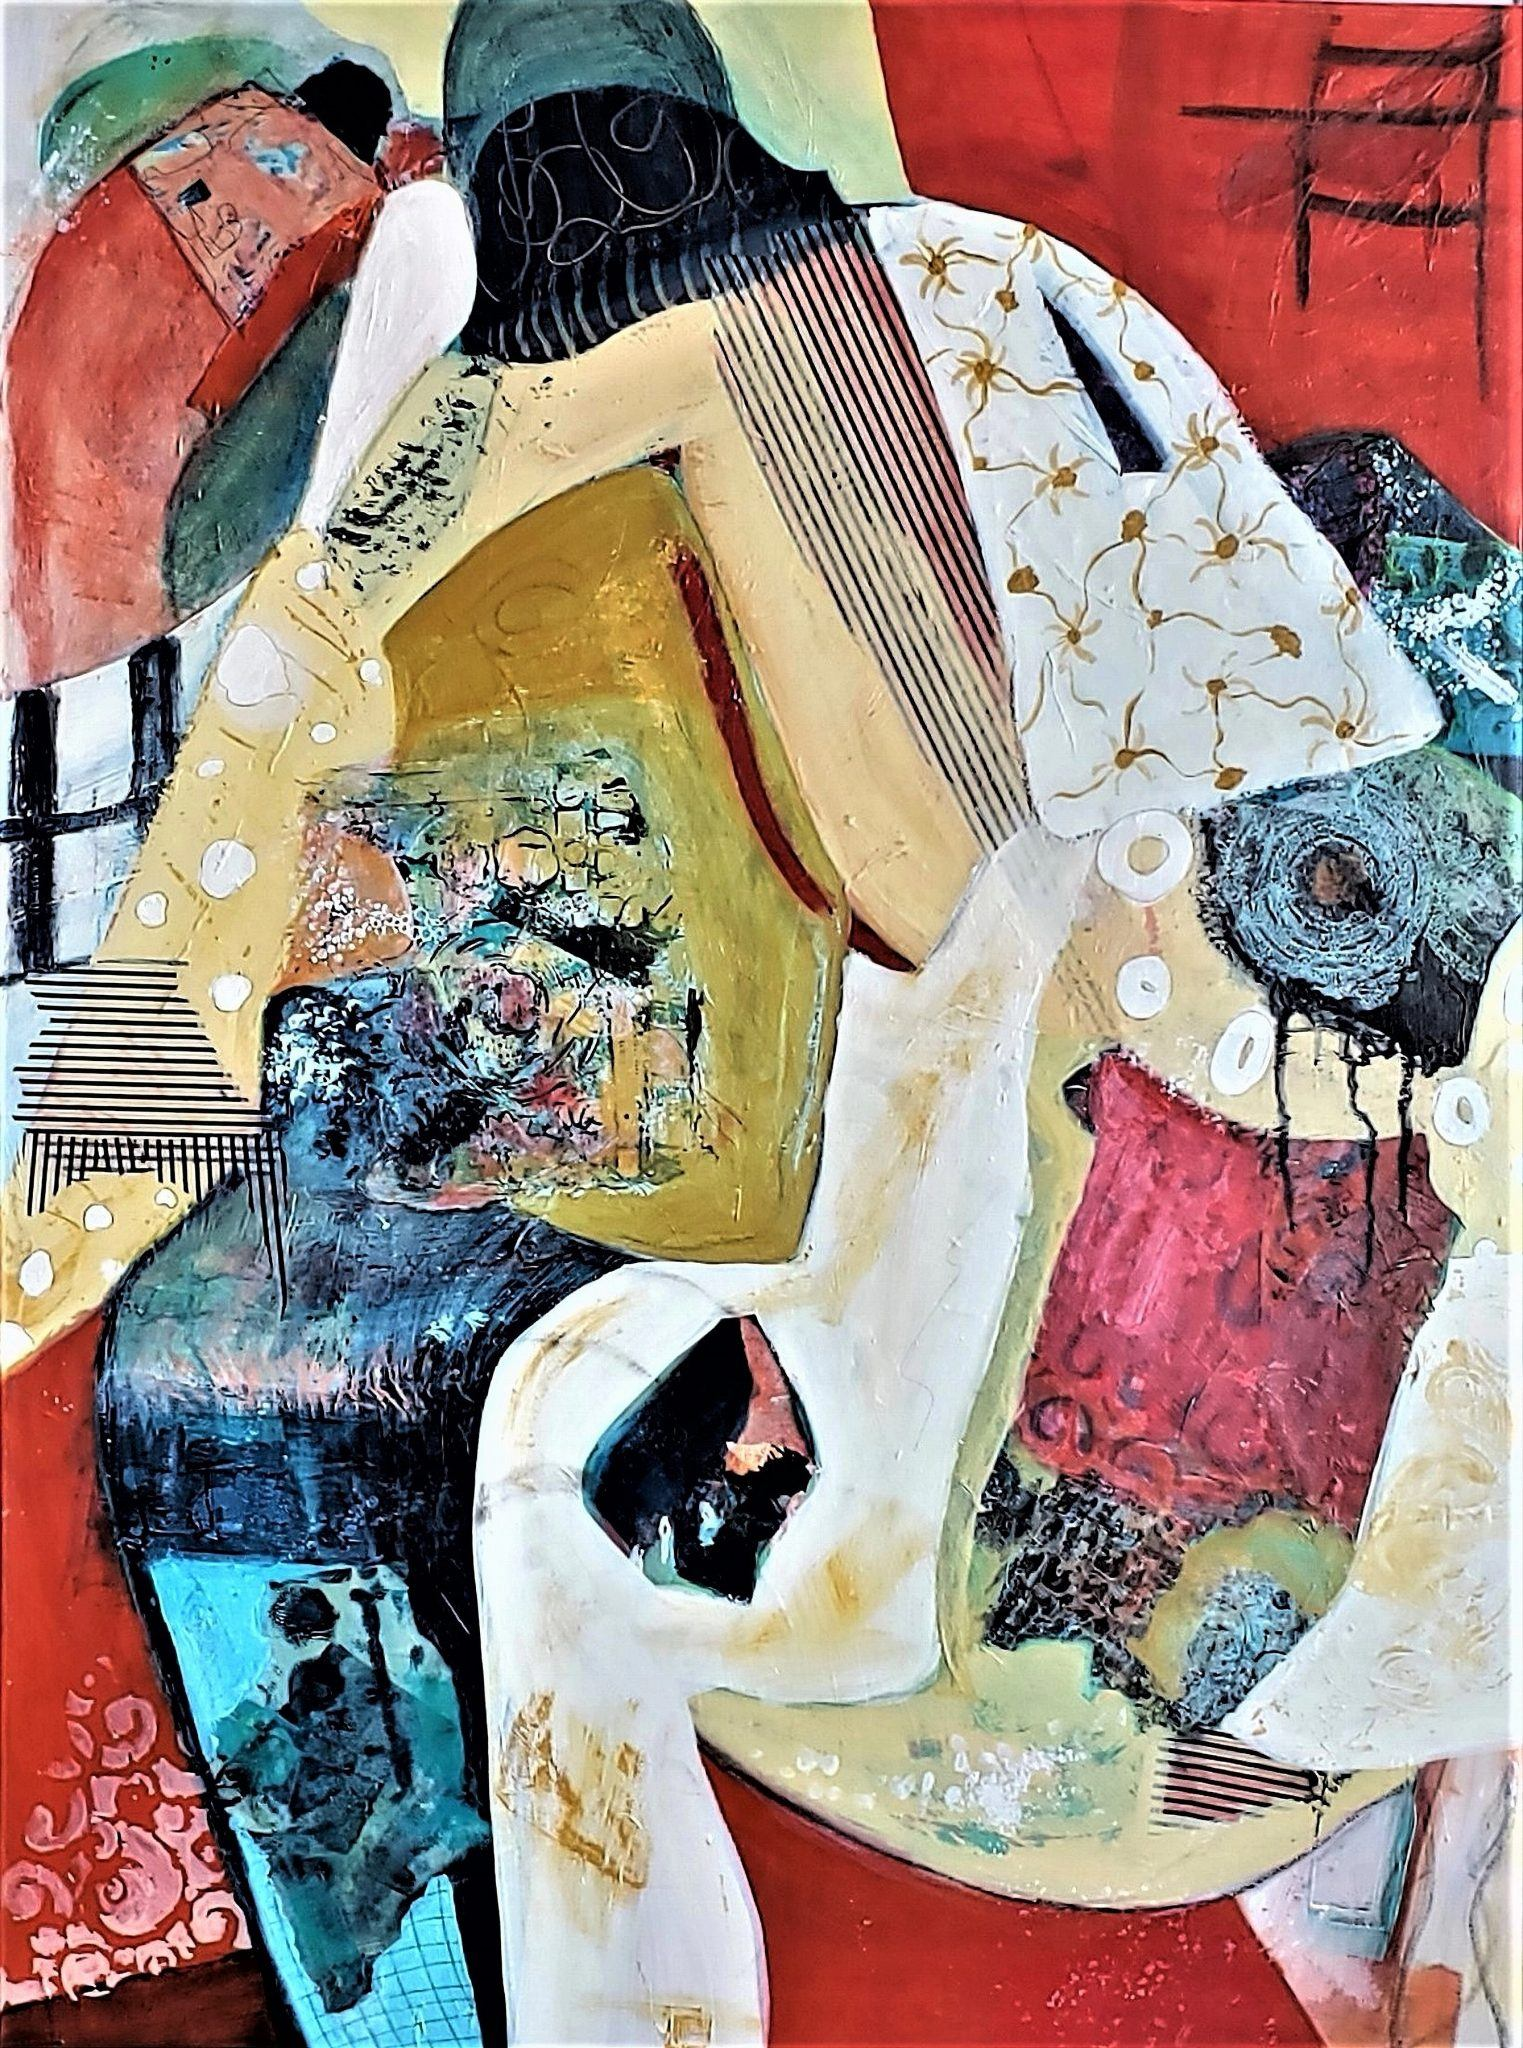 Smith.The Looking Glass. Mixed Media. 40x30